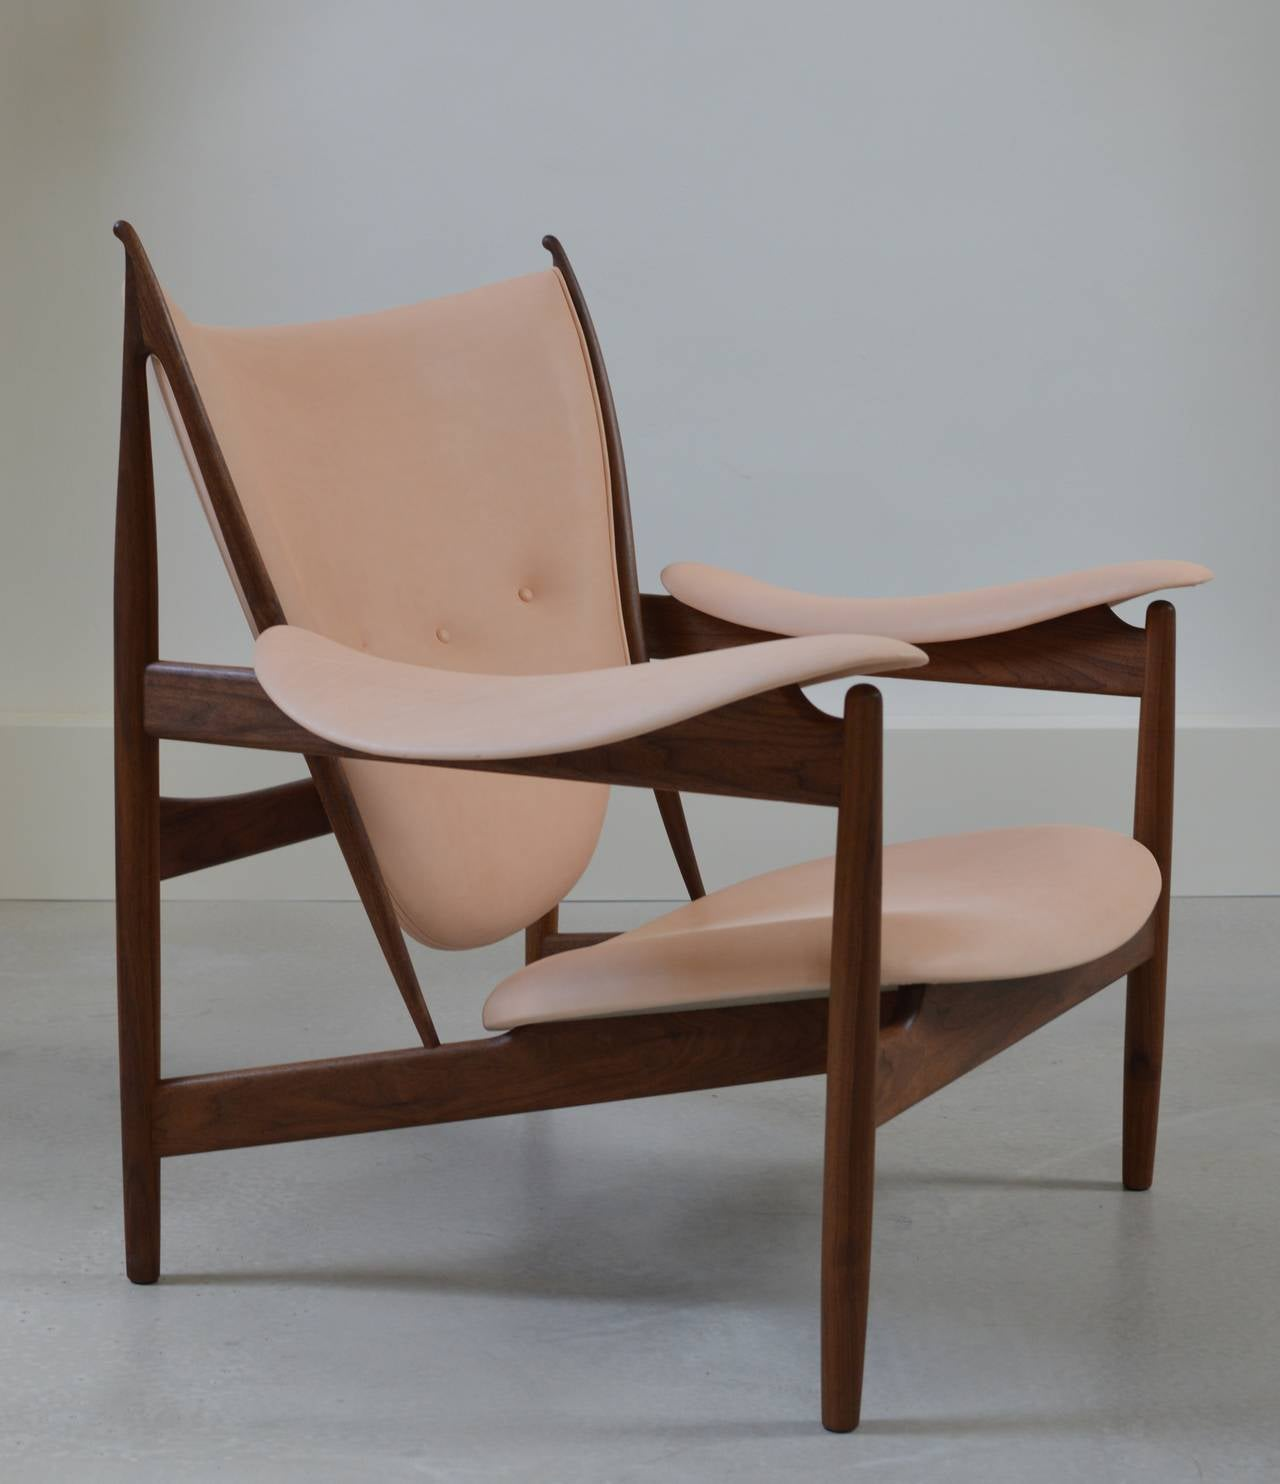 Beautiful Chieftain Chair By Finn Juhl Executed In Walnut And Vegetable Leather. The  Most Beautiful,